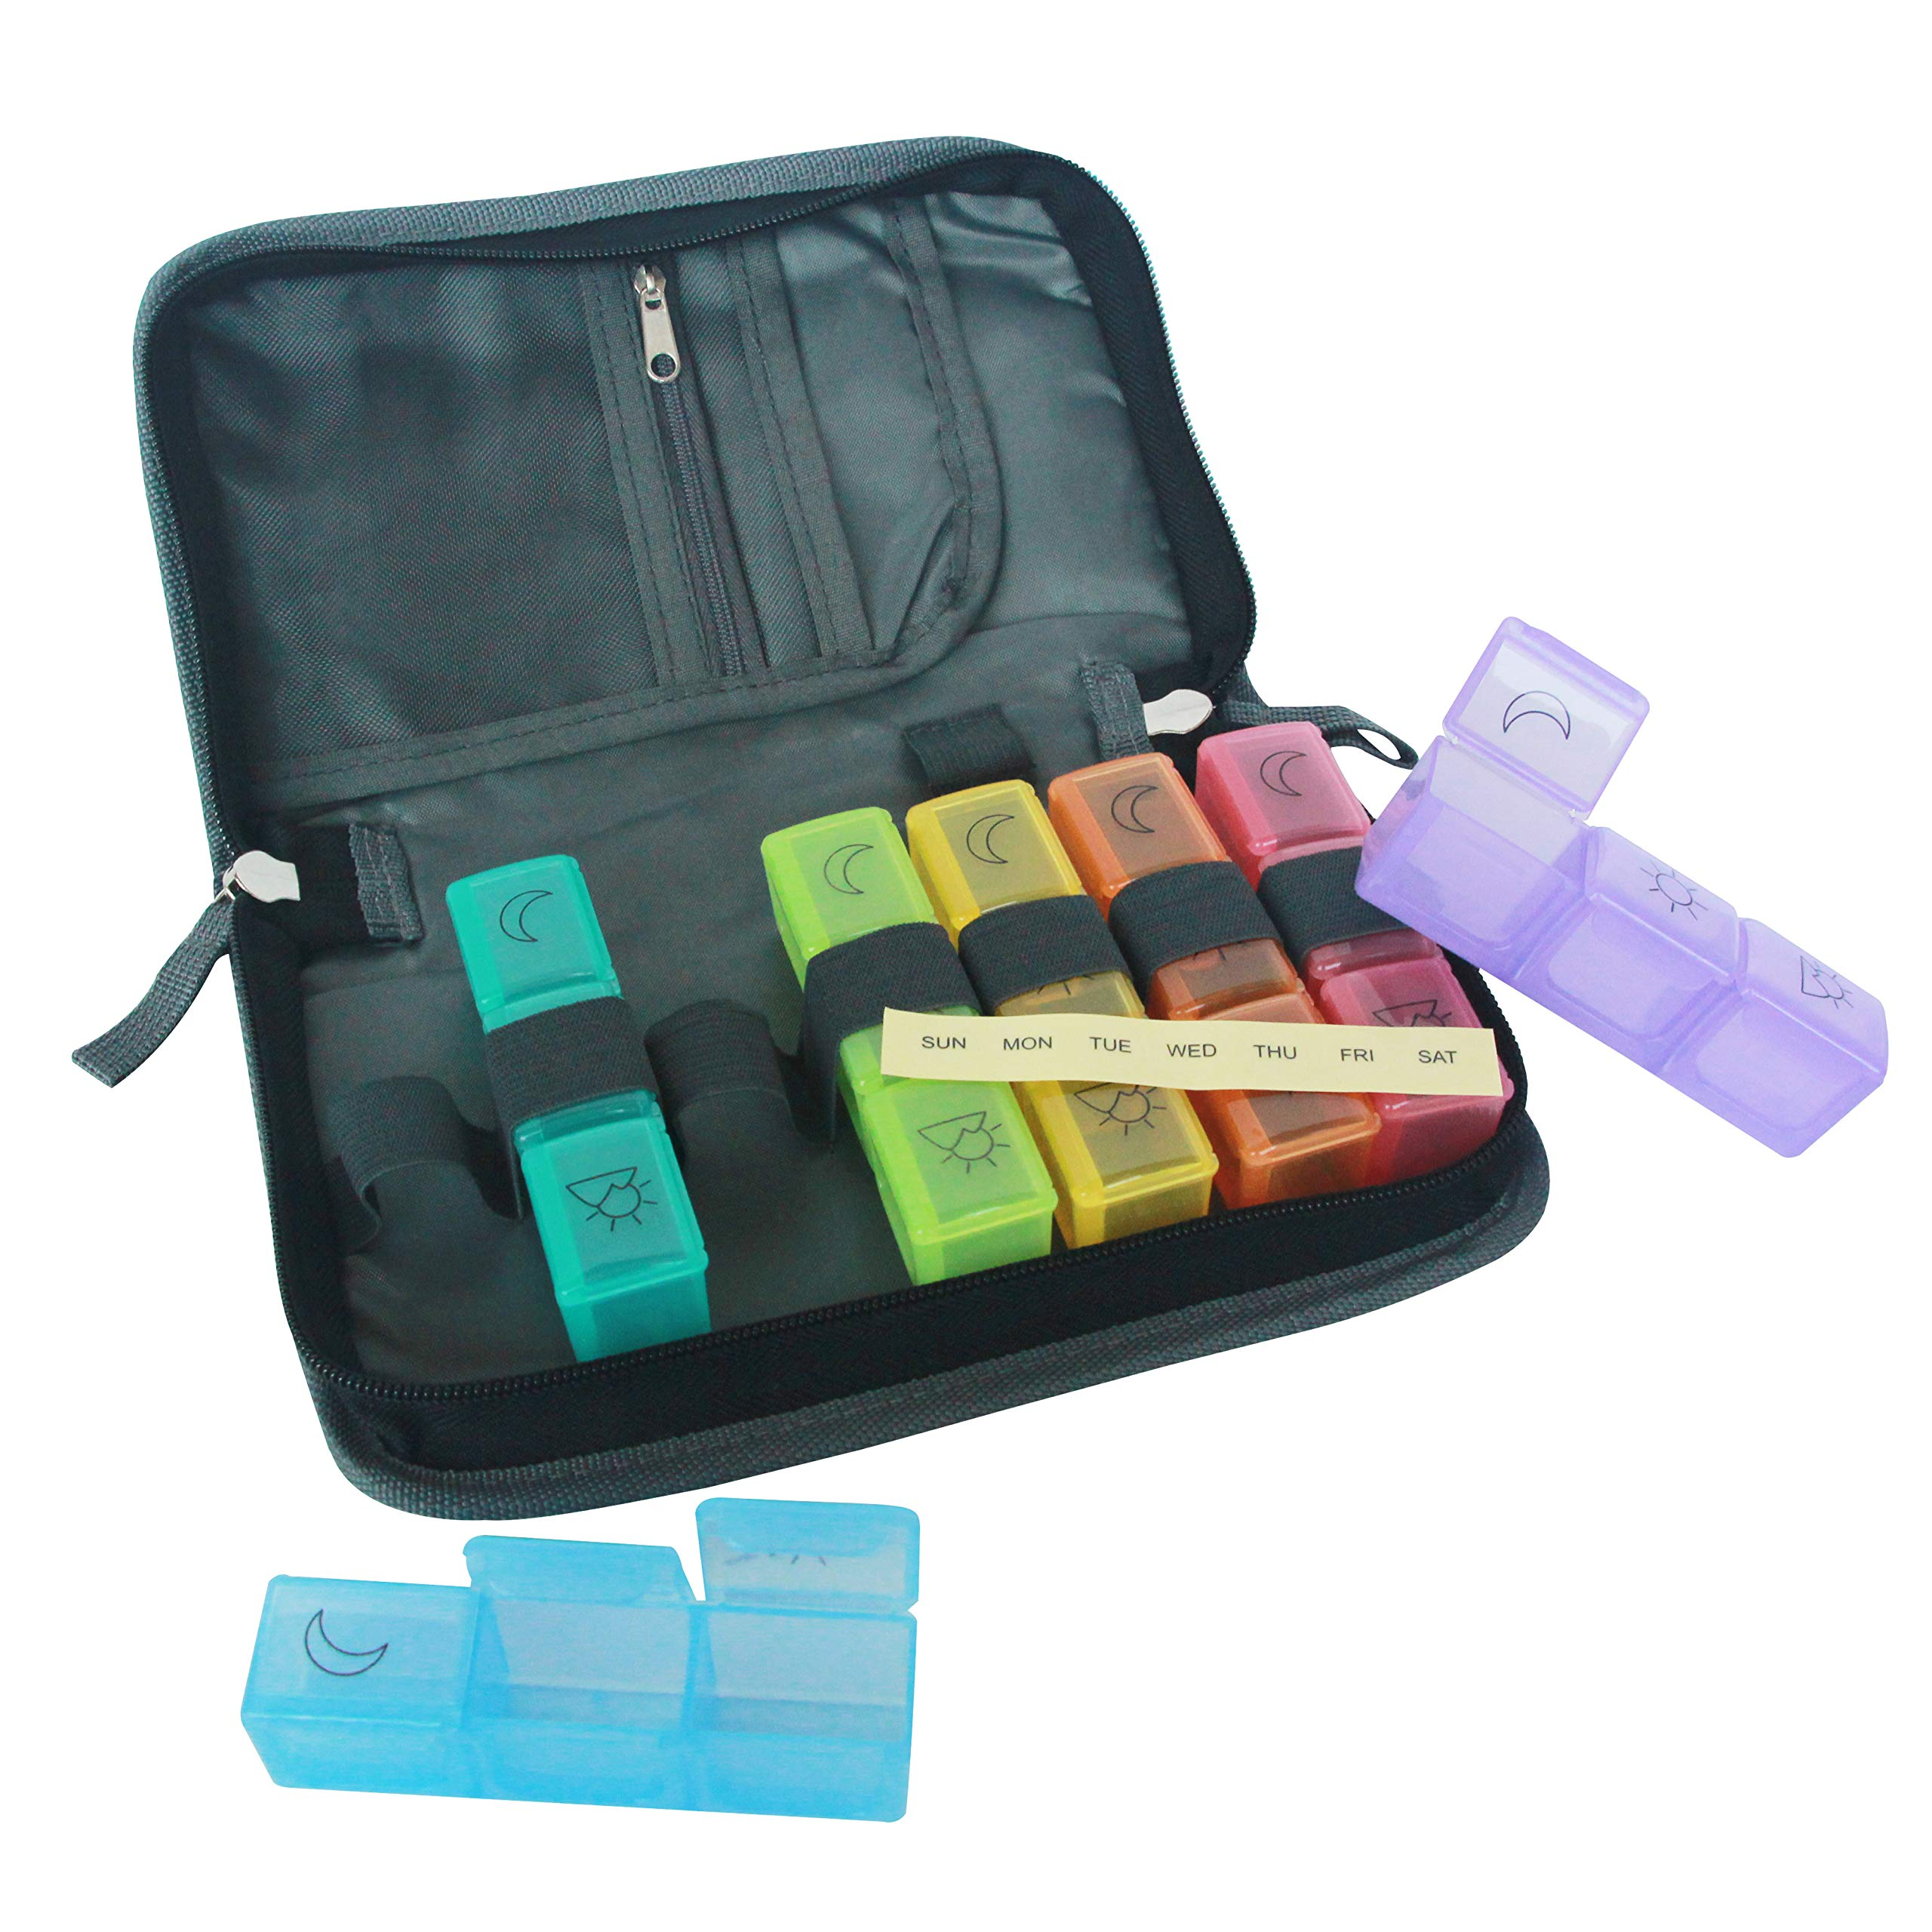 travelbug 21 Compartment Travel Pill Organizer with Premium Polyester Carrying Case | 7 Brightly Colored Daily Pill Boxes with Days of The Week Labels and Elastic Loops